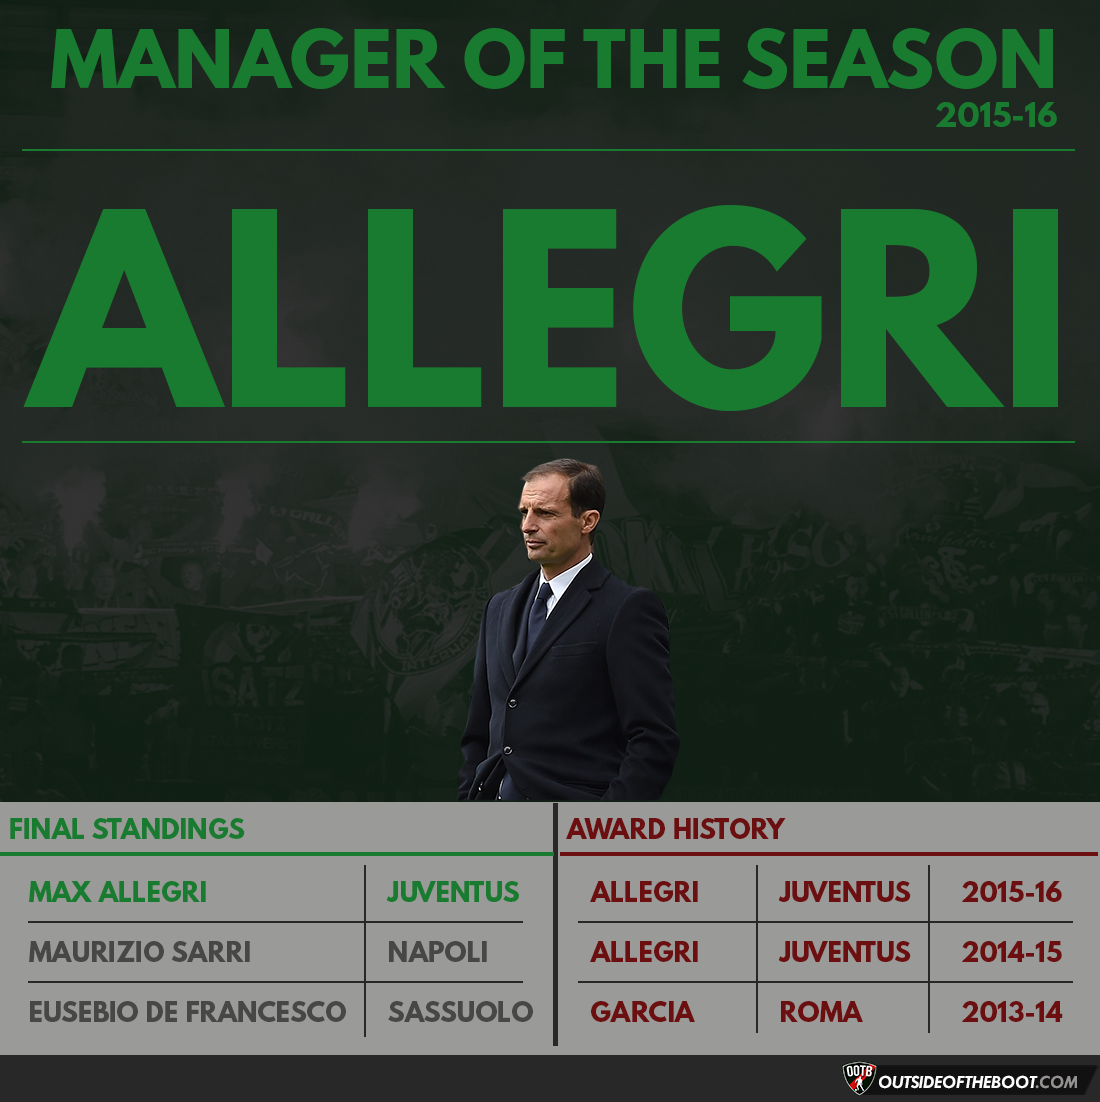 Serie A Manager of the Season 2015-16